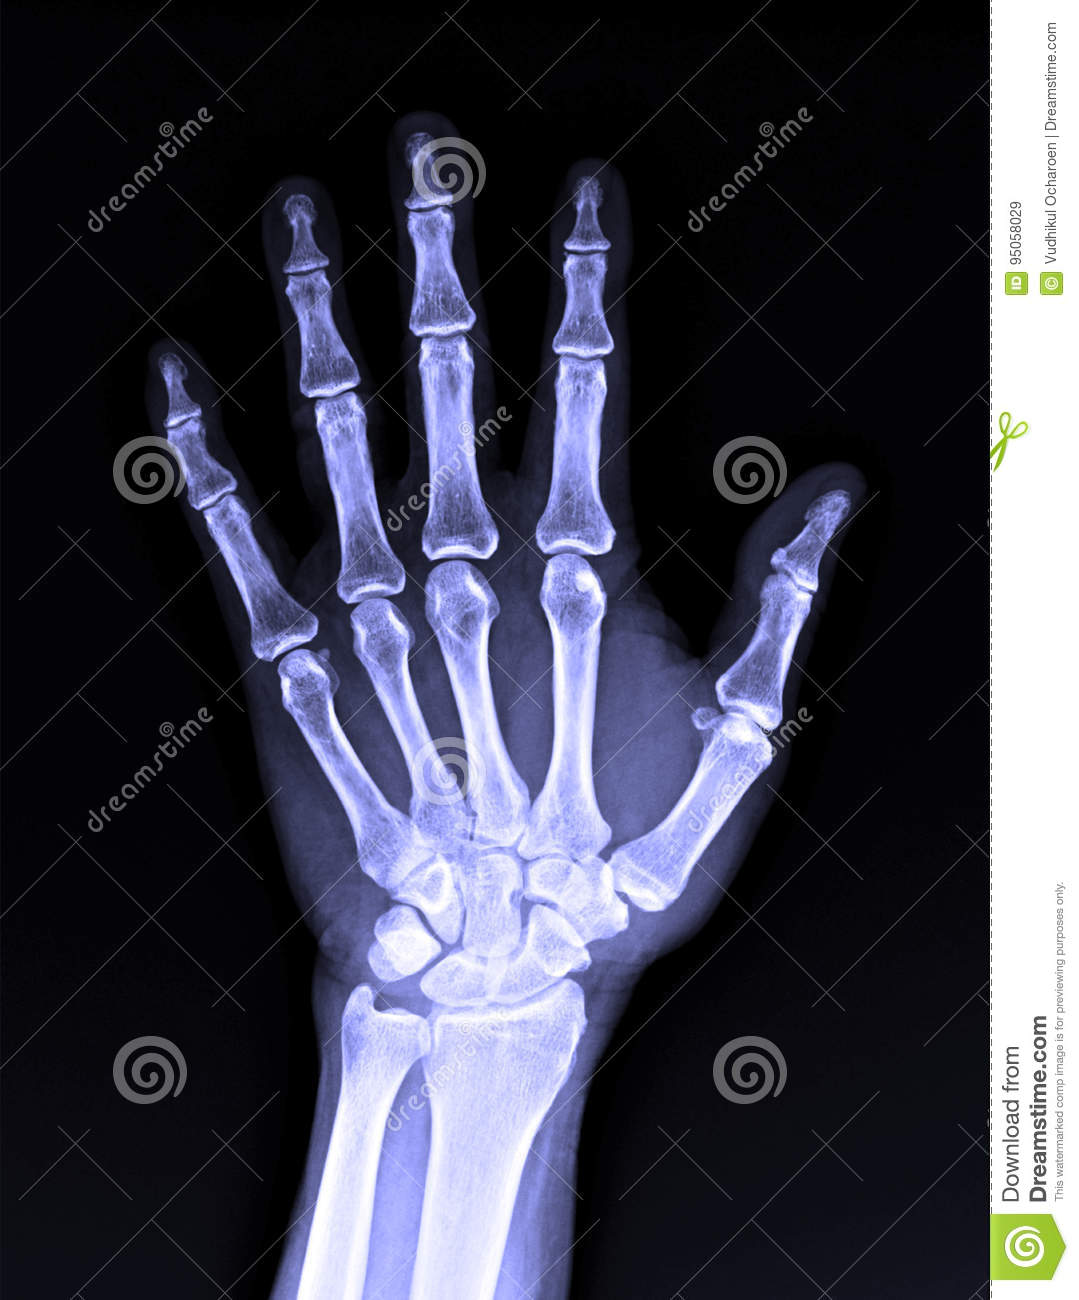 X-Ray image of male human hand